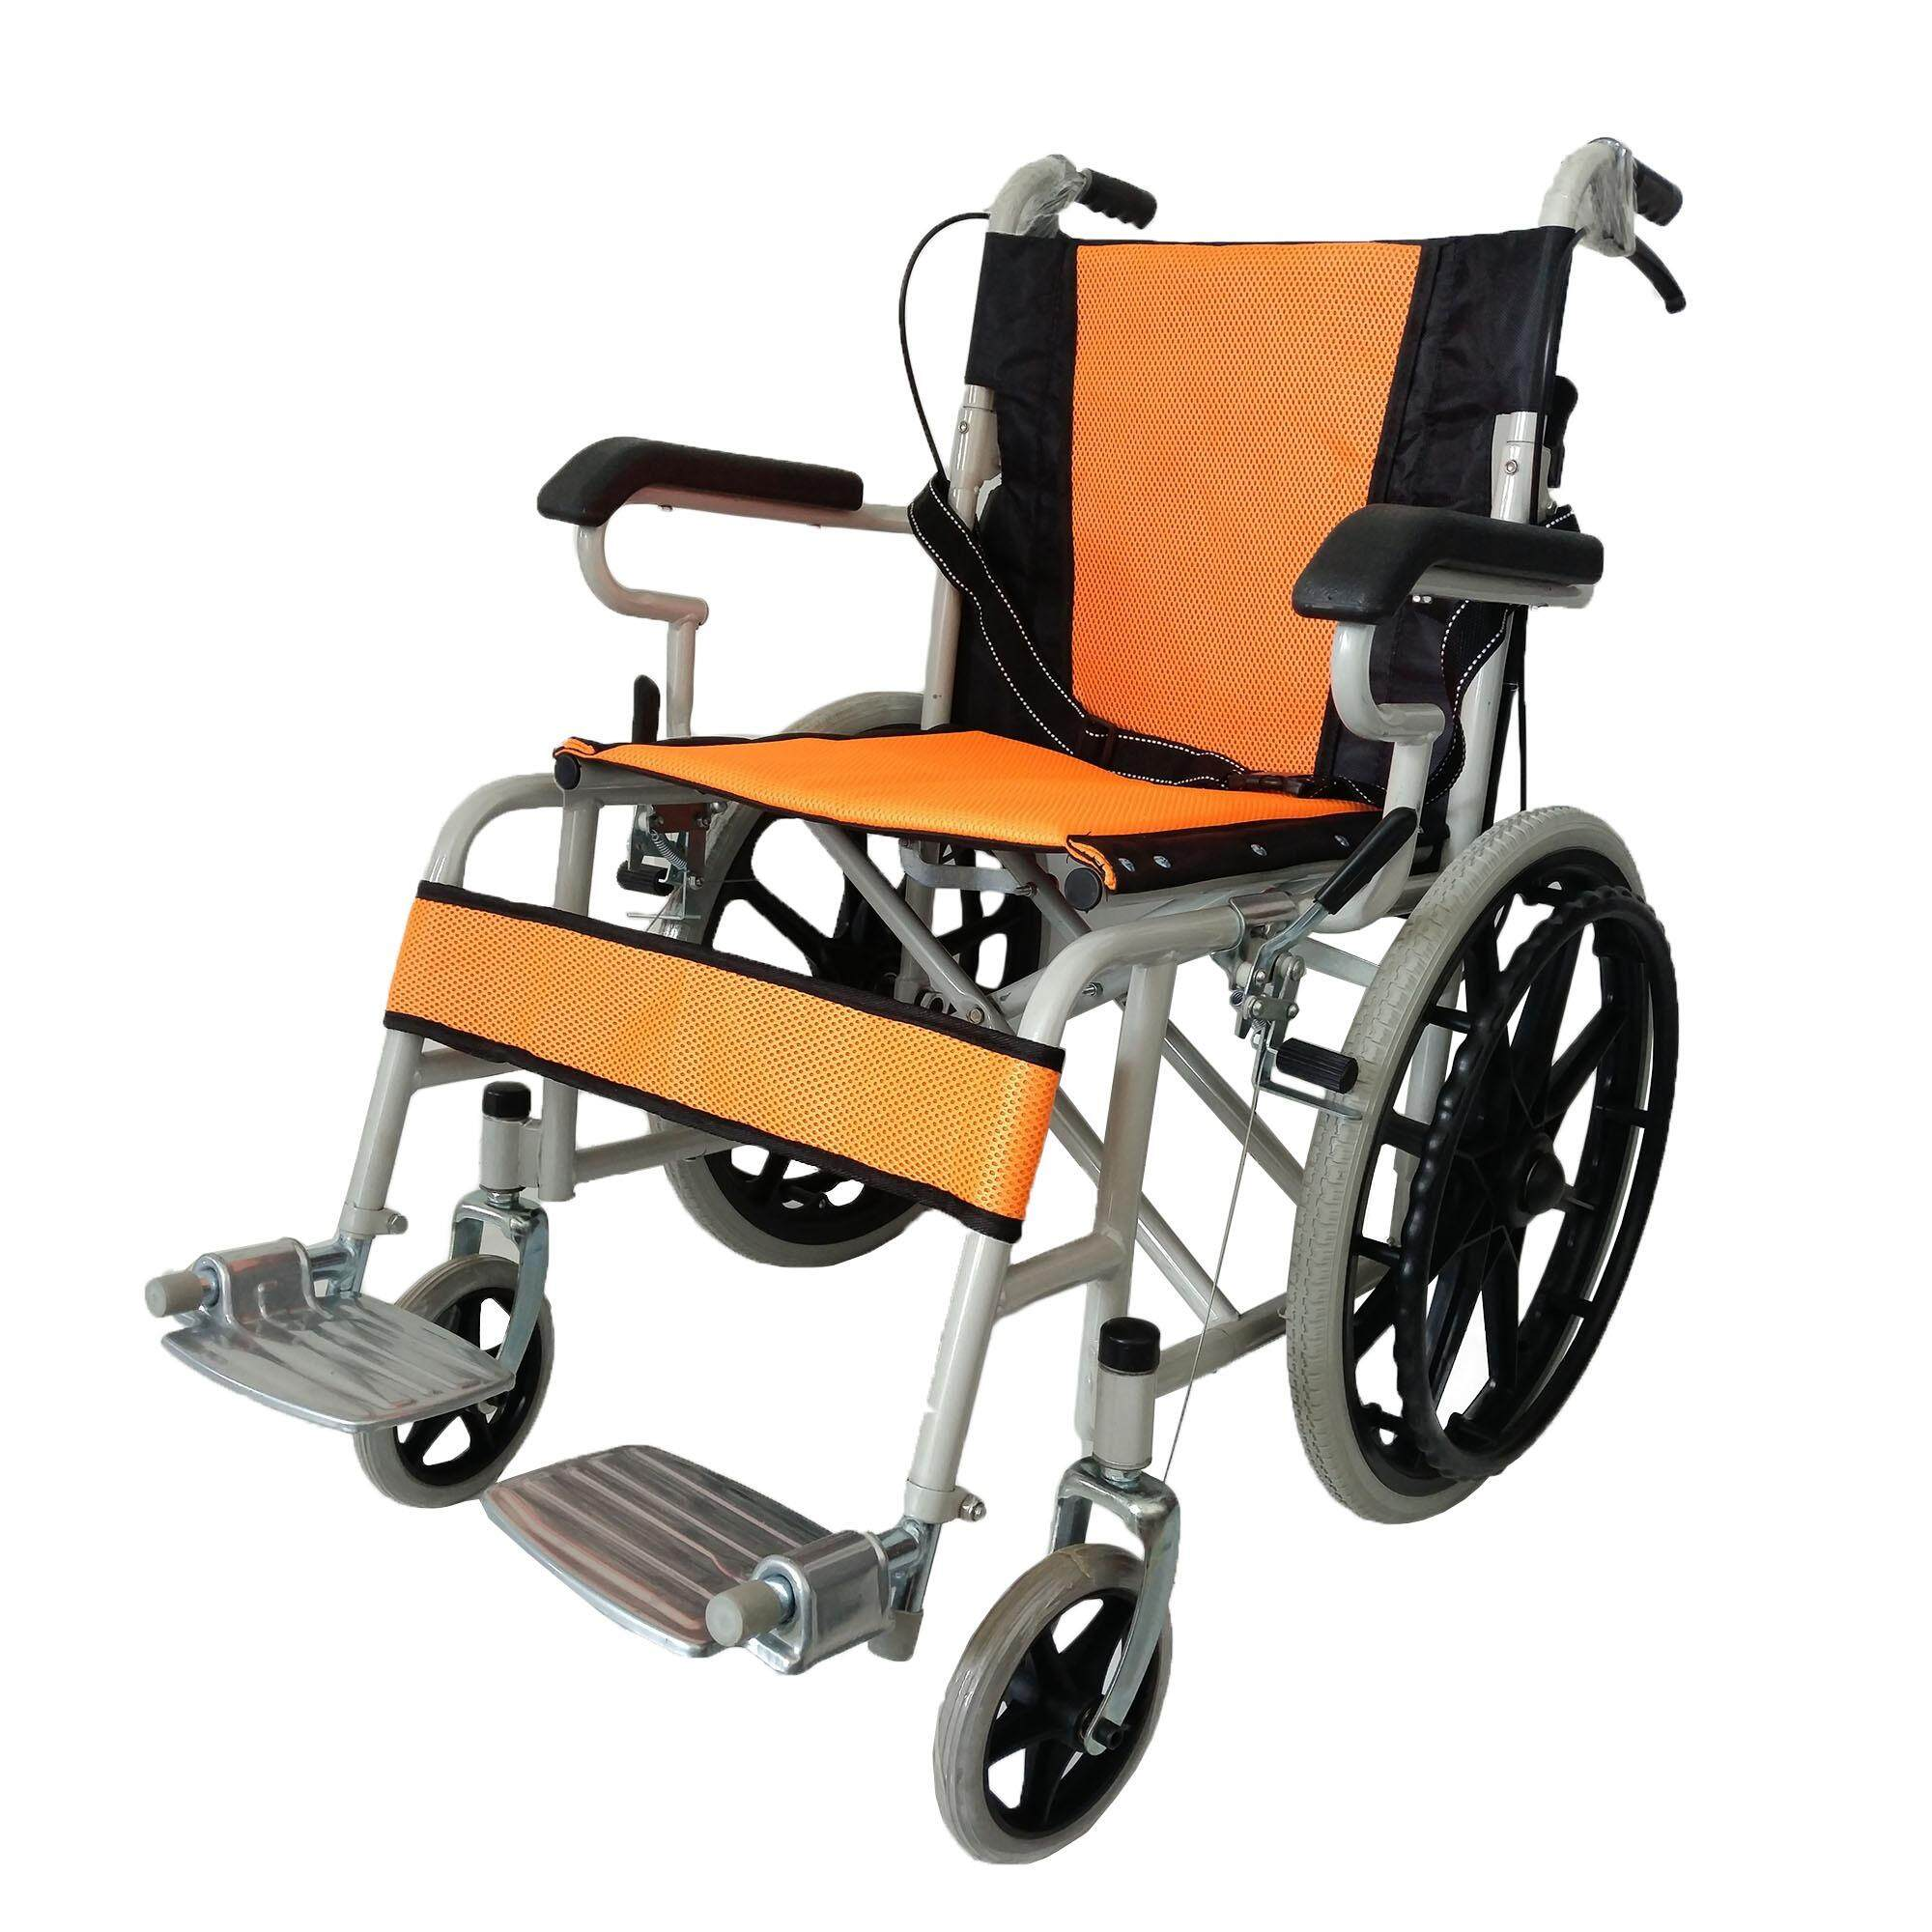 price for the smart malaysia steel powder best in kd wheelchairs grey coated chair wheelchair